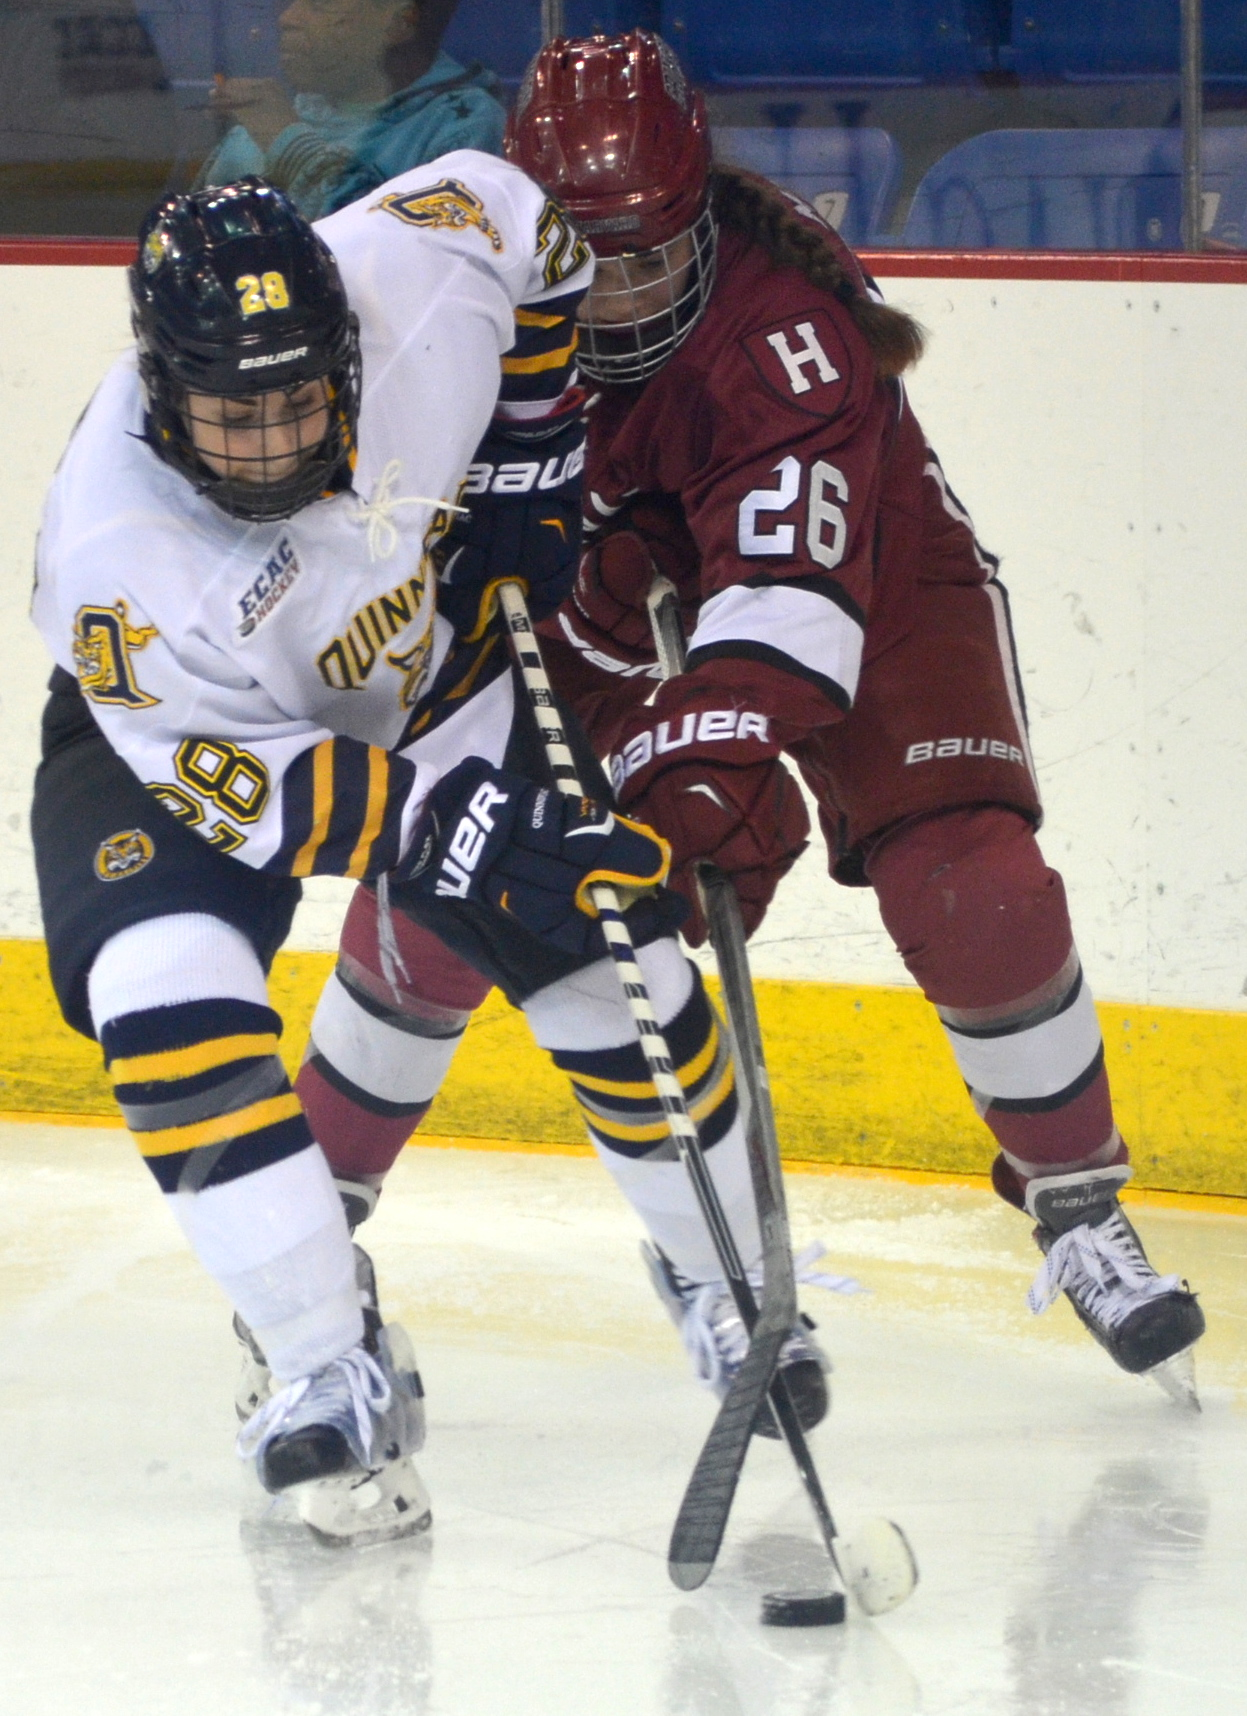 Jordan Novack|Quinnipiac Chronicle Miranda Lantz battles for possession vs Harvard 12/5/15